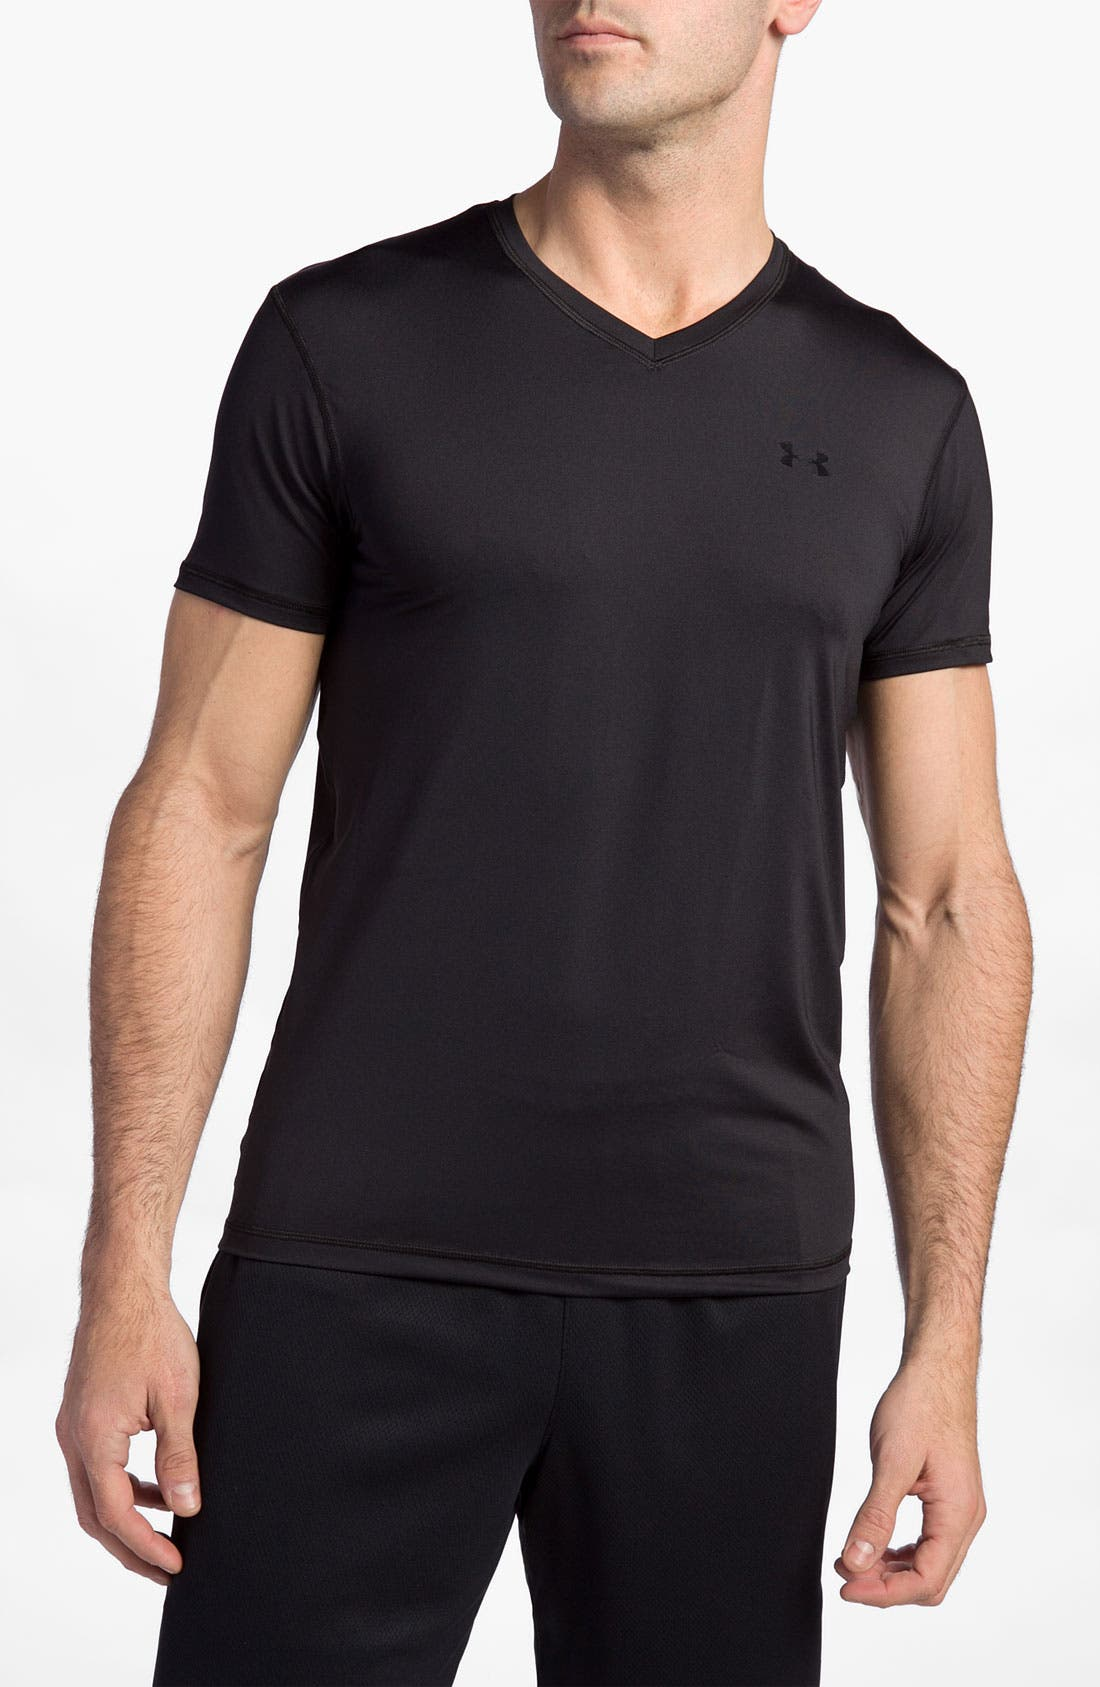 Alternate Image 1 Selected - Under Armour 'O Series' HeatGear® V-Neck T-Shirt